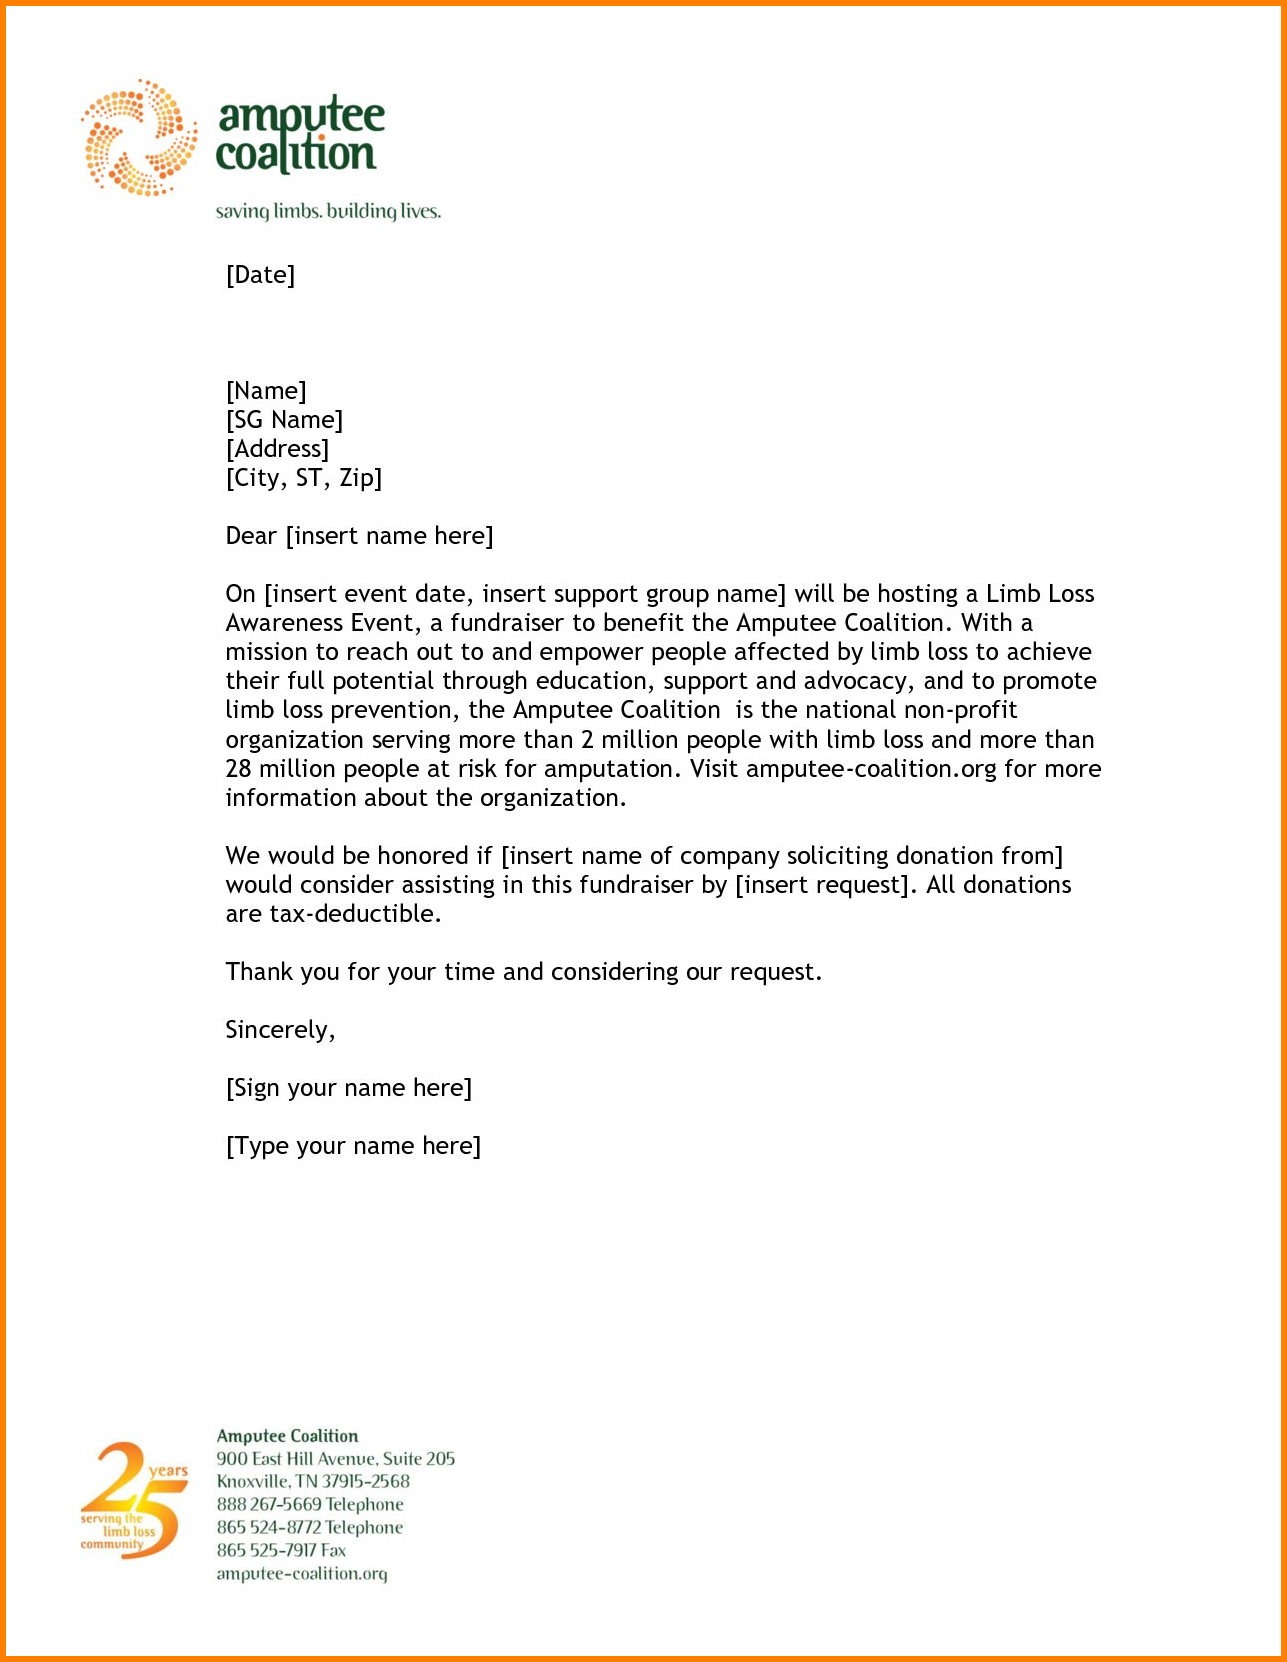 Donor Request Letter Template Donation Cover Download Now For Regarding How To Write A Donation Request Letter Template